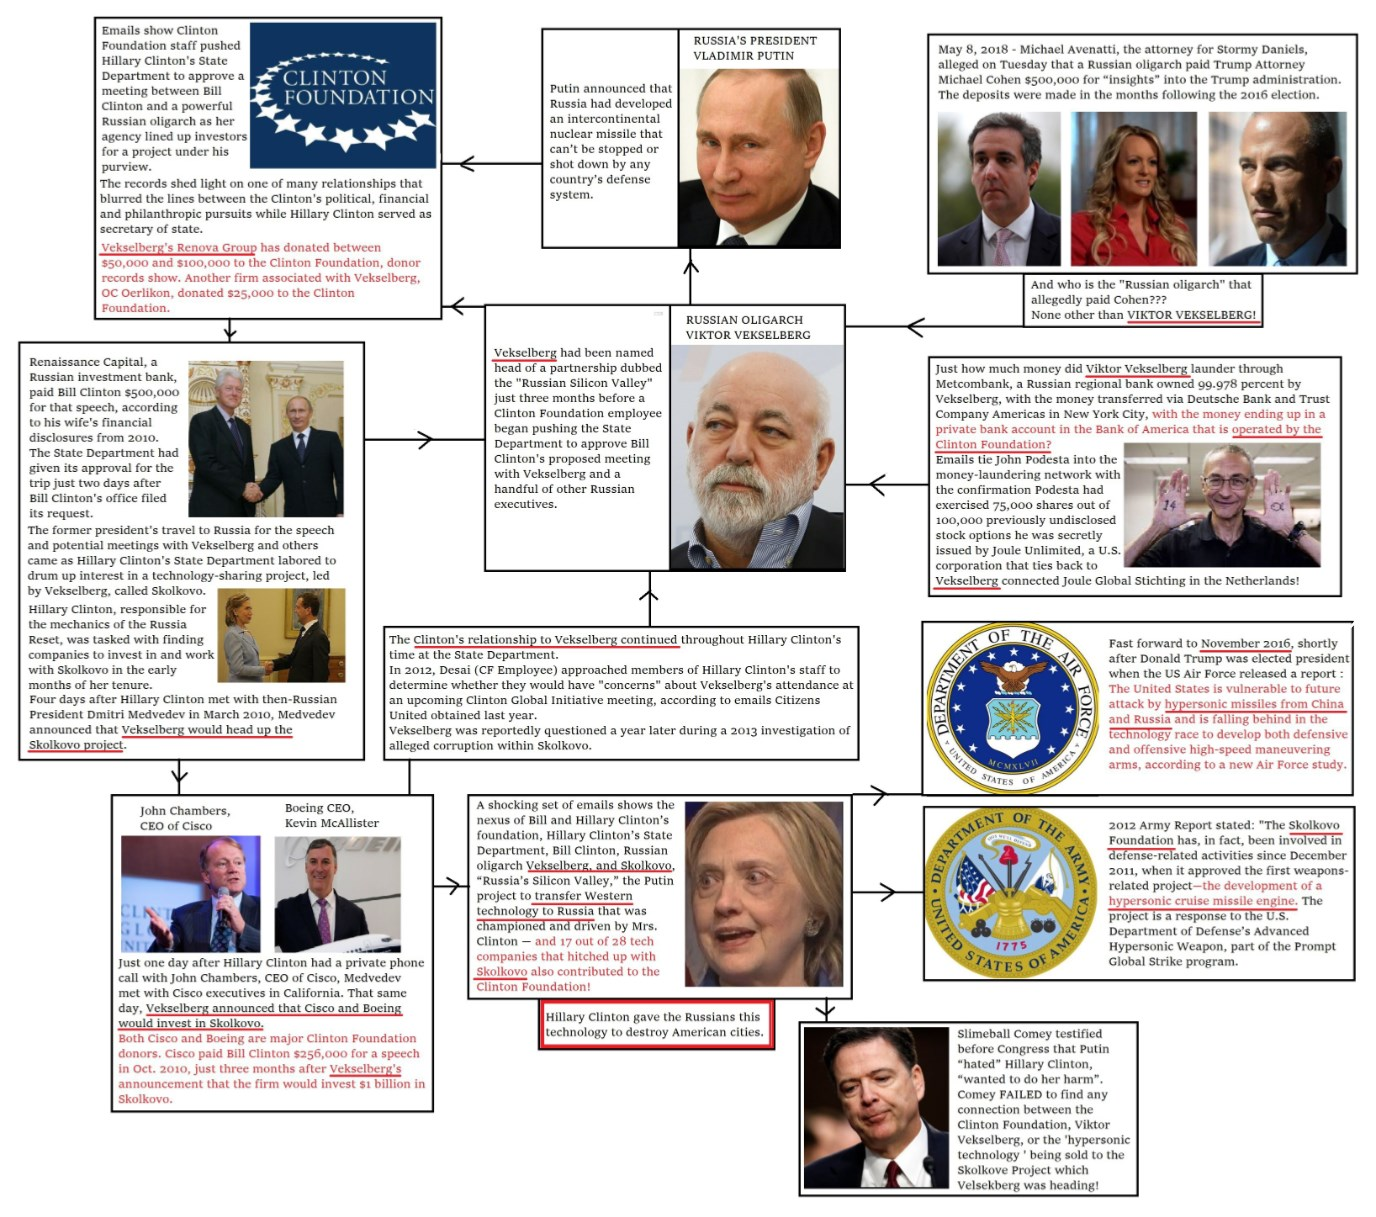 The Coalitions of the Connected. #NewQ #QAnon #GreatAwakening #NeonRevolt